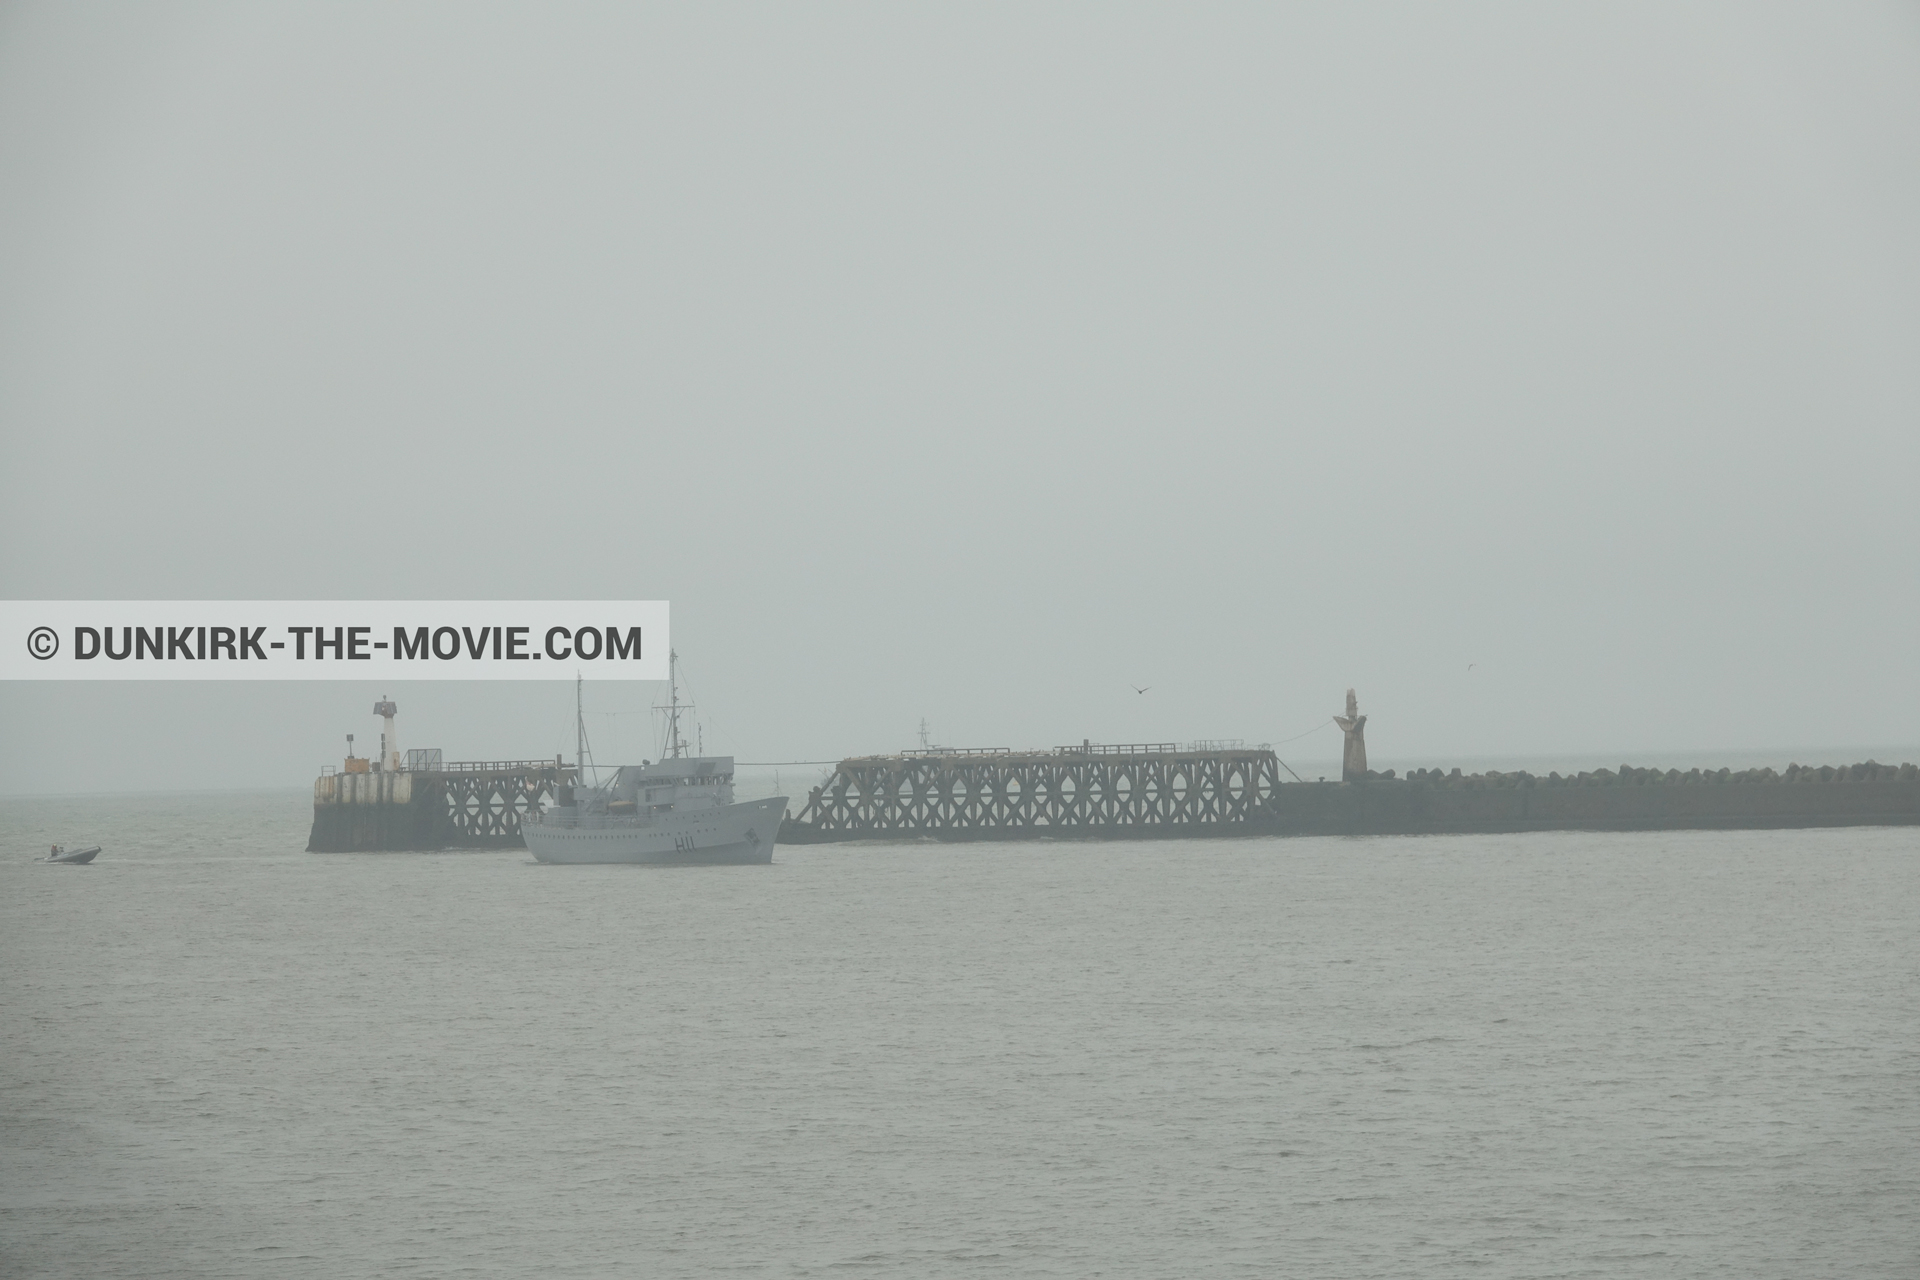 Picture with boat, grey sky, H11 - MLV Castor,  from behind the scene of the Dunkirk movie by Nolan